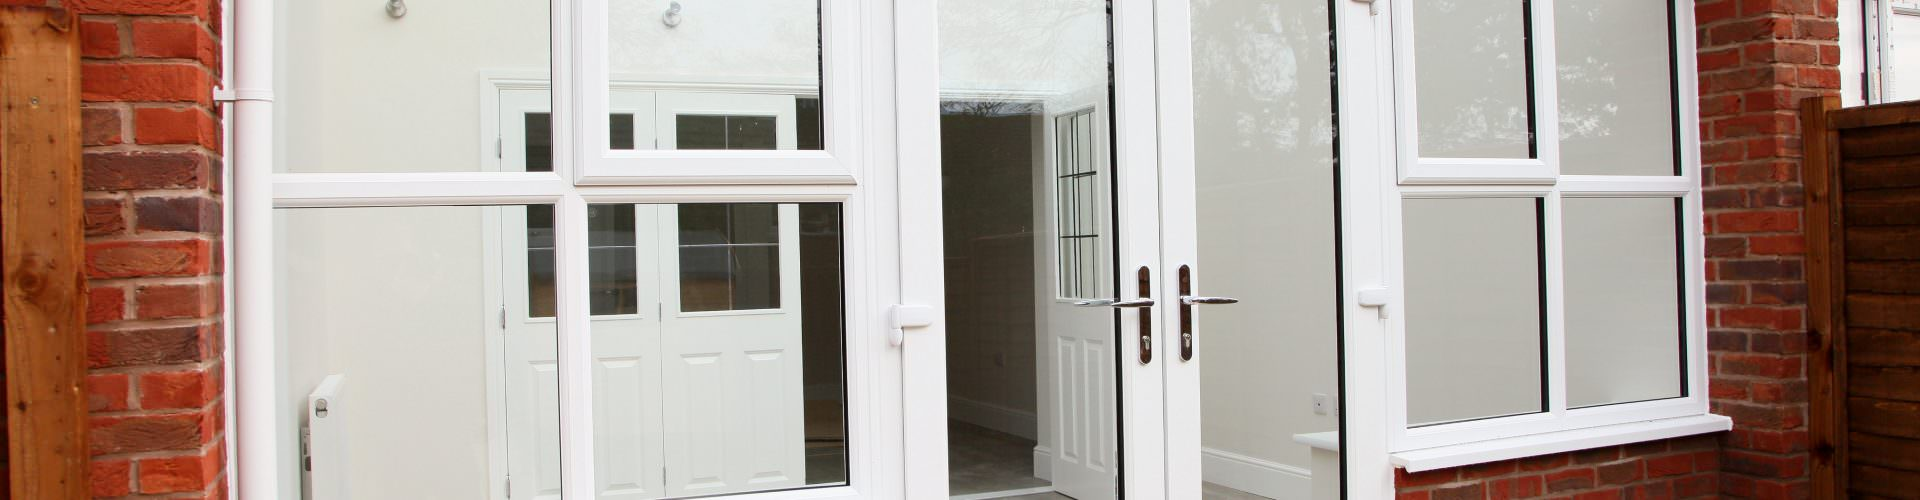 French doors luton upvc doors bedfordshire double glazing connect home and garden with our beautiful upvc french doors rubansaba